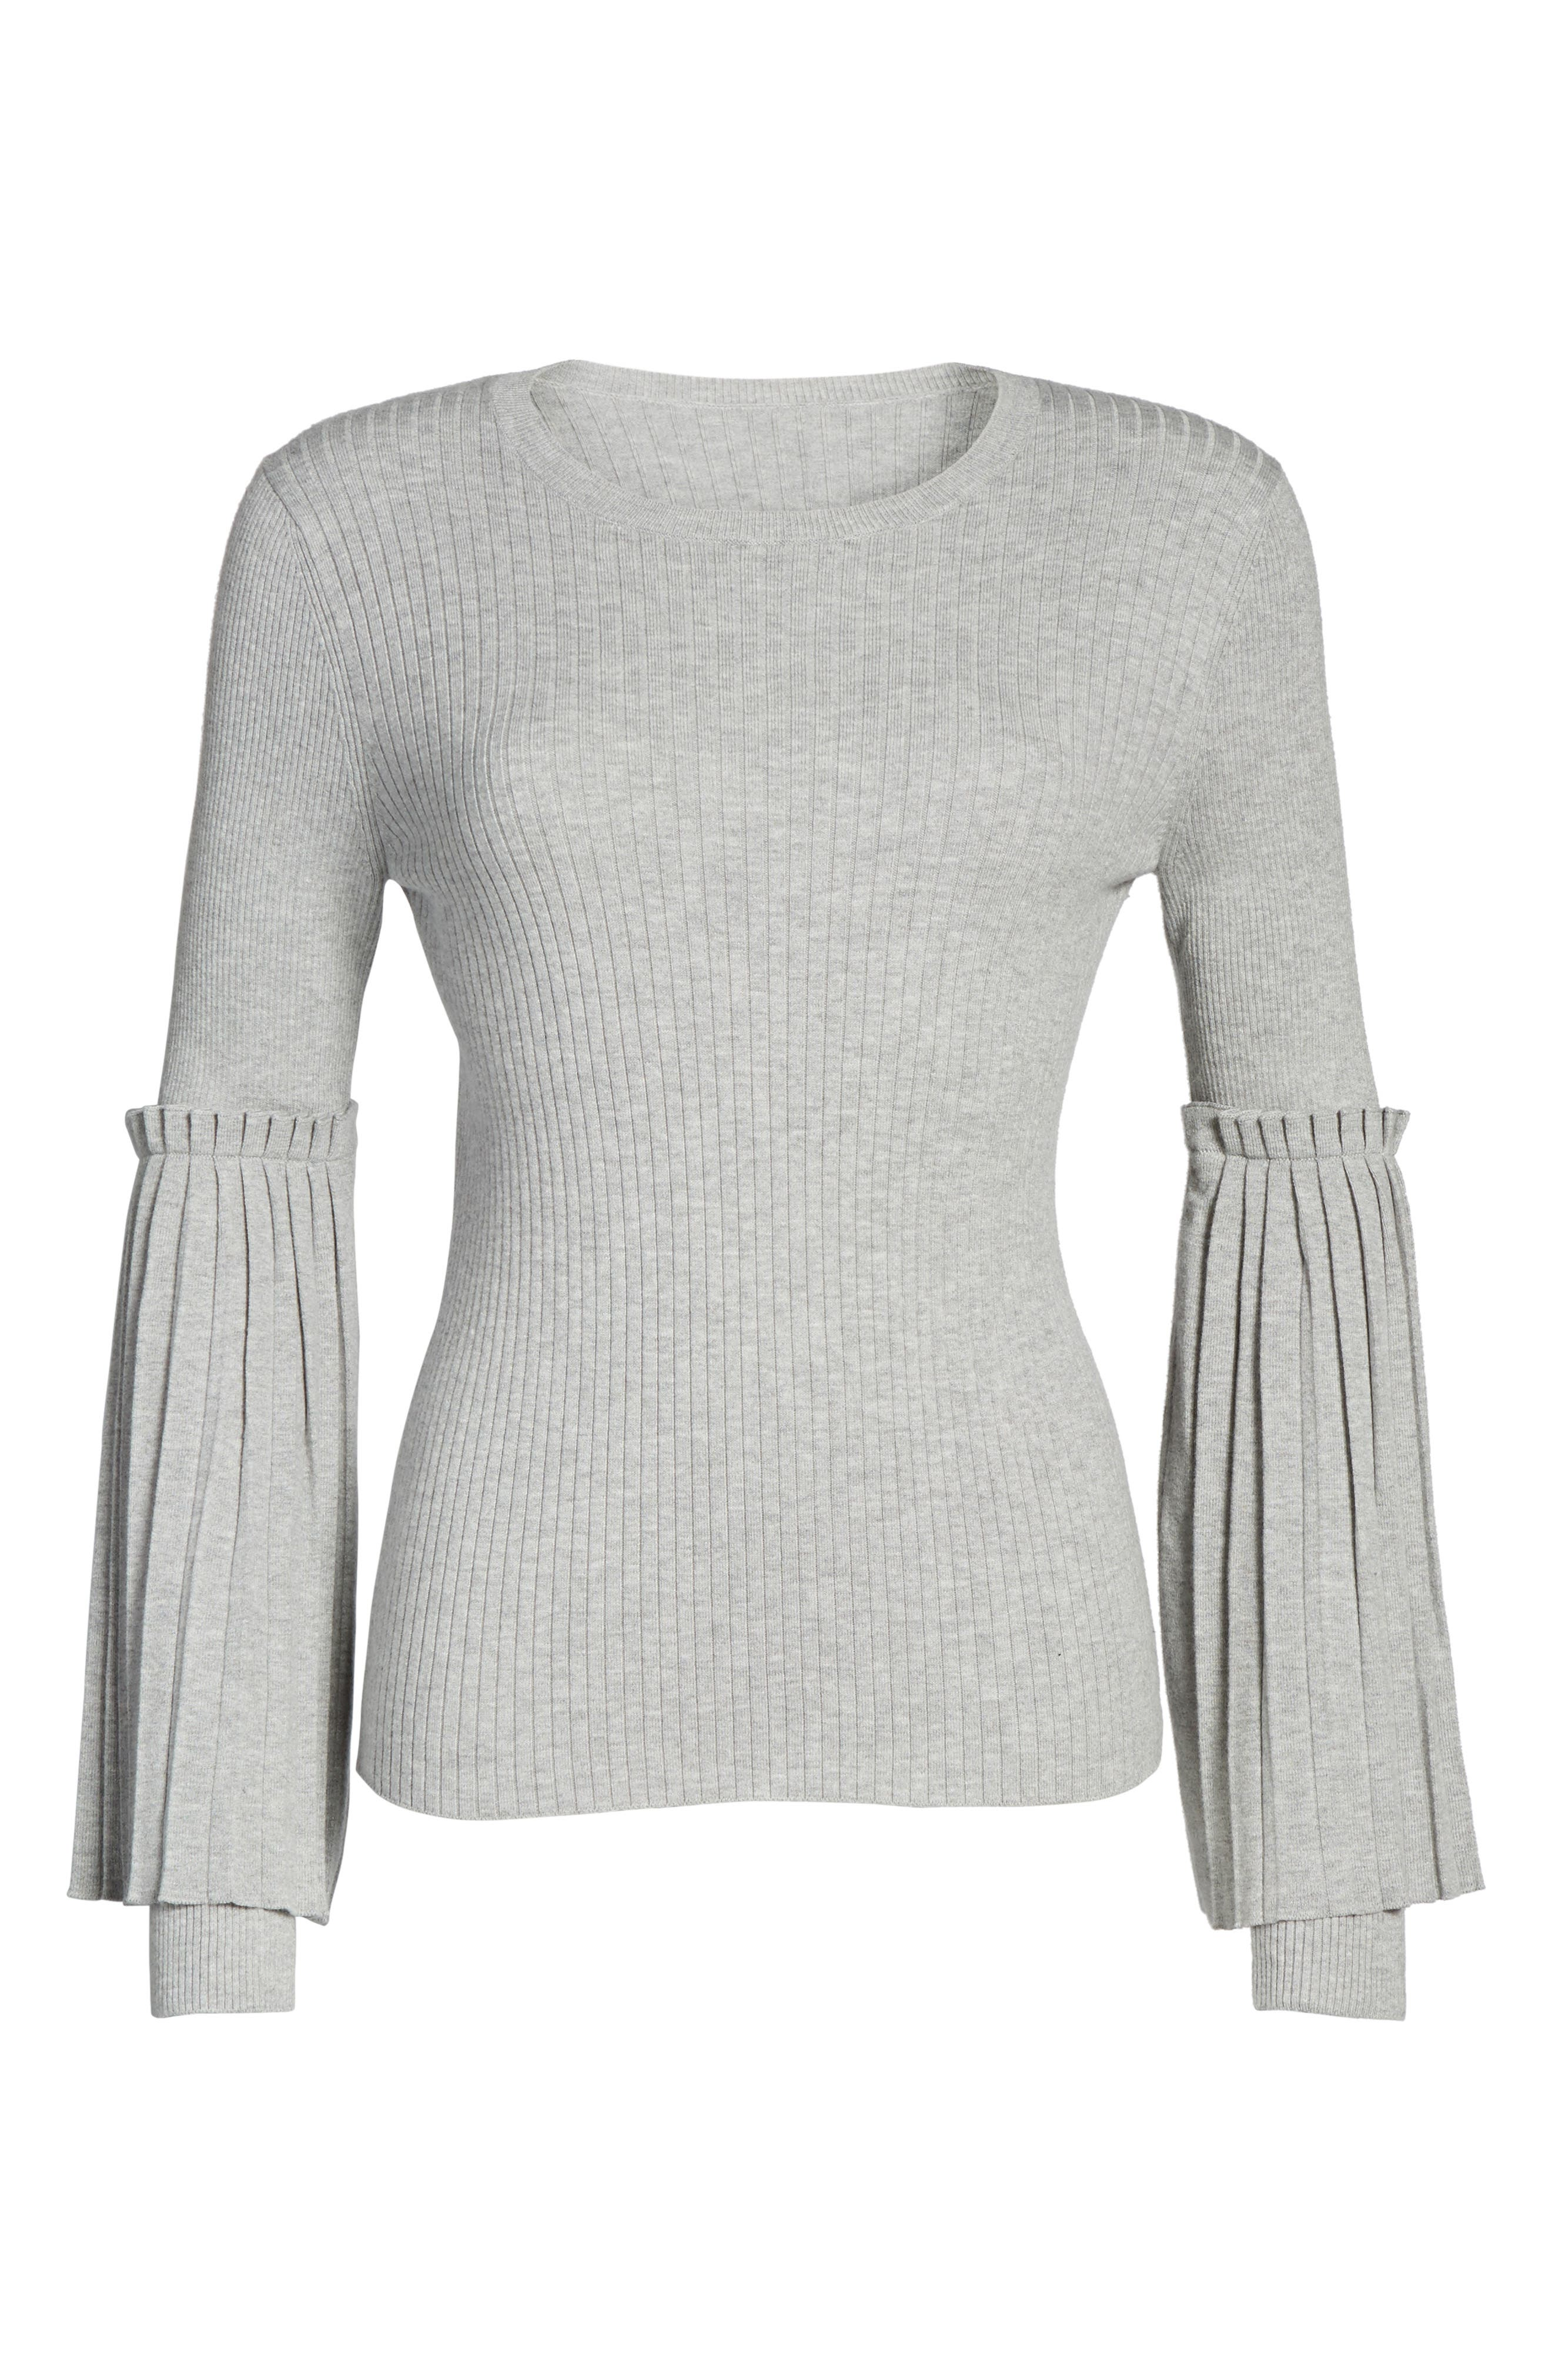 Bell Sleeve Sweater,                             Alternate thumbnail 6, color,                             050